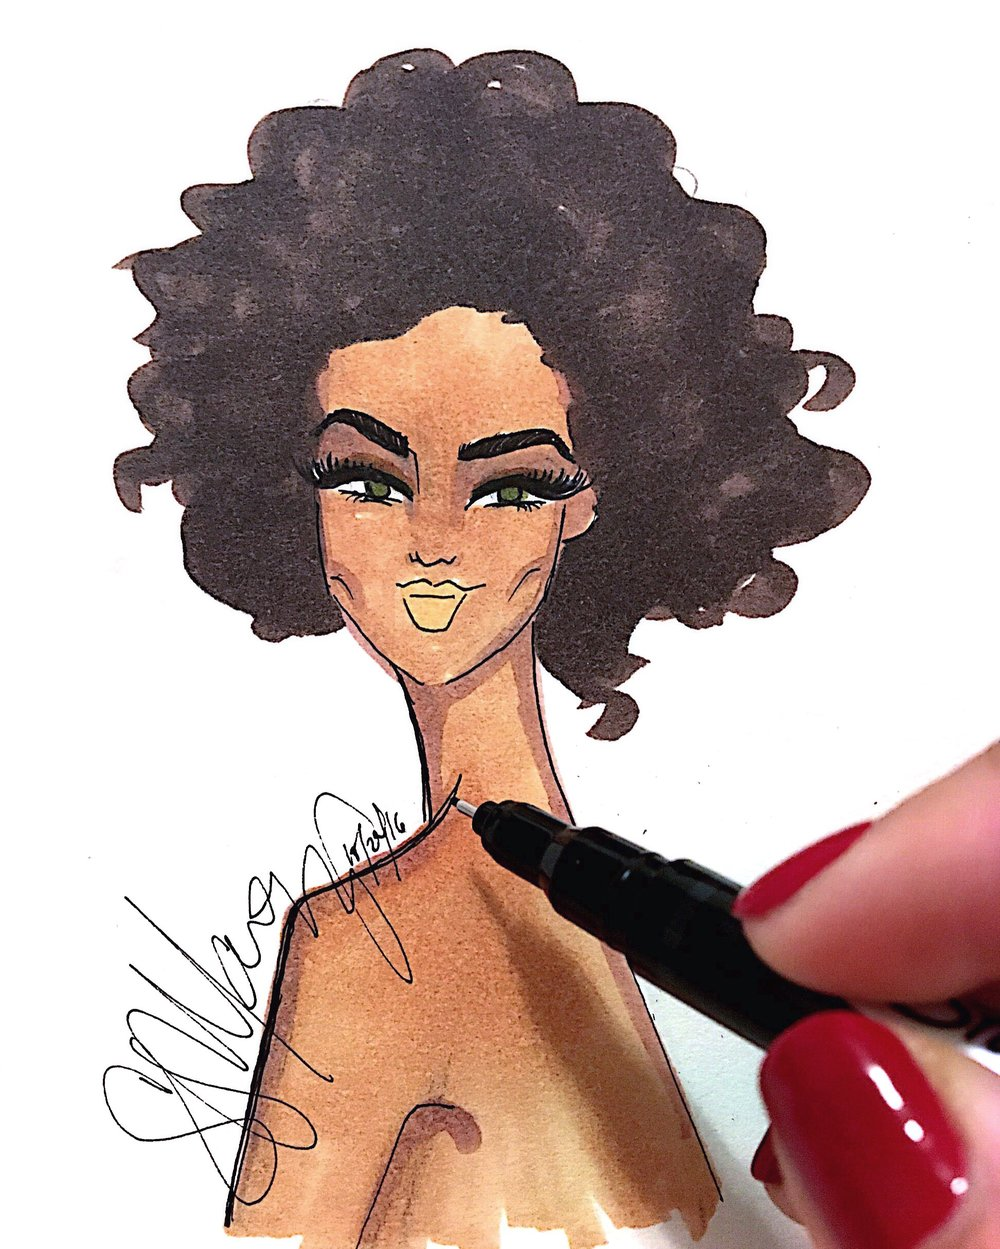 behind the scenes - News, tidbits, and a behind the scenes look into the making of my Saranovelas.All illustrations are hand drawn using a combination of watercolor markers and colored pencils. For custom portraits, commissions and collaborations, take a look at my Products page and/or contact me at saranovelitas@gmail.com.